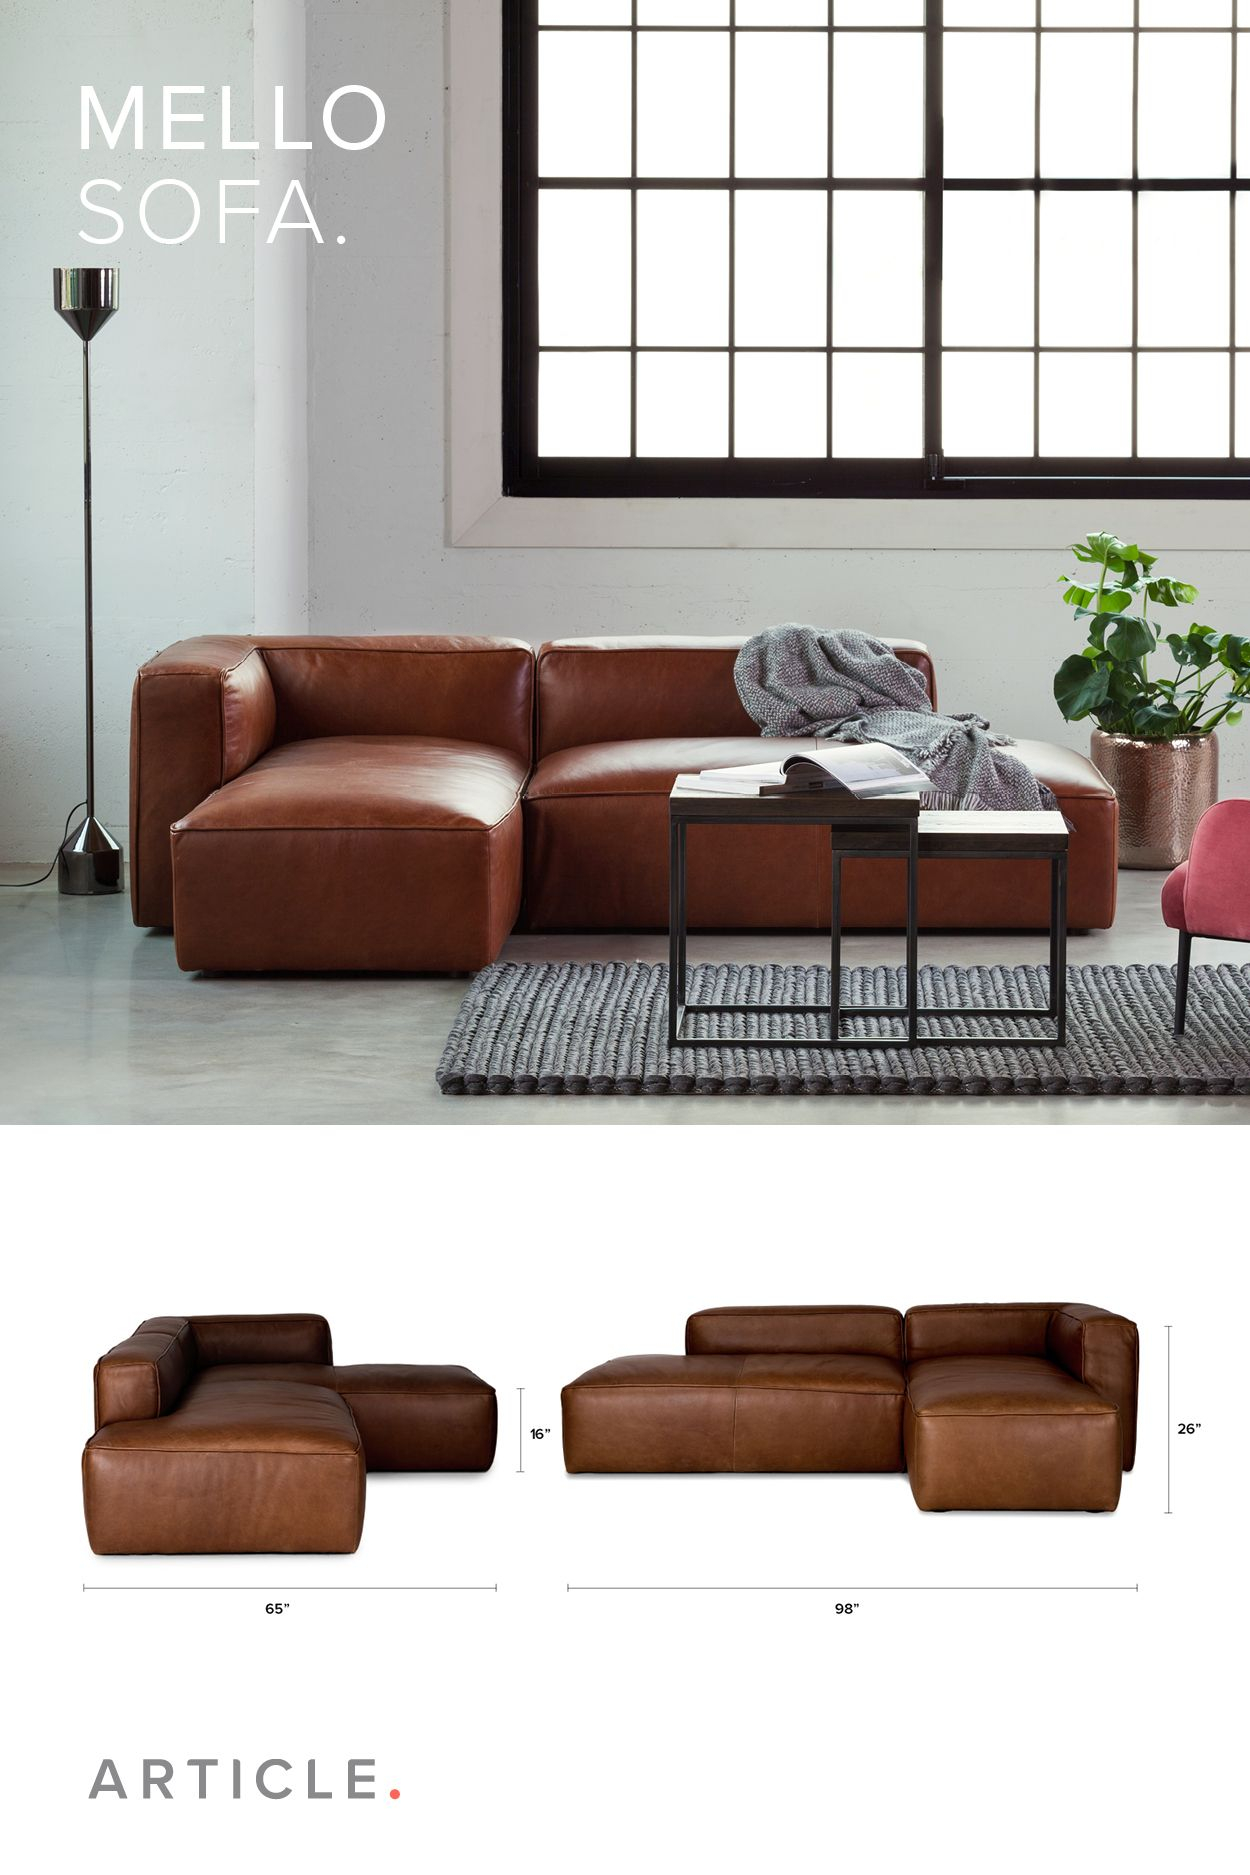 Taking The Cake For Comfort And Style The Mello Sofa Is inside size 1250 X 1875